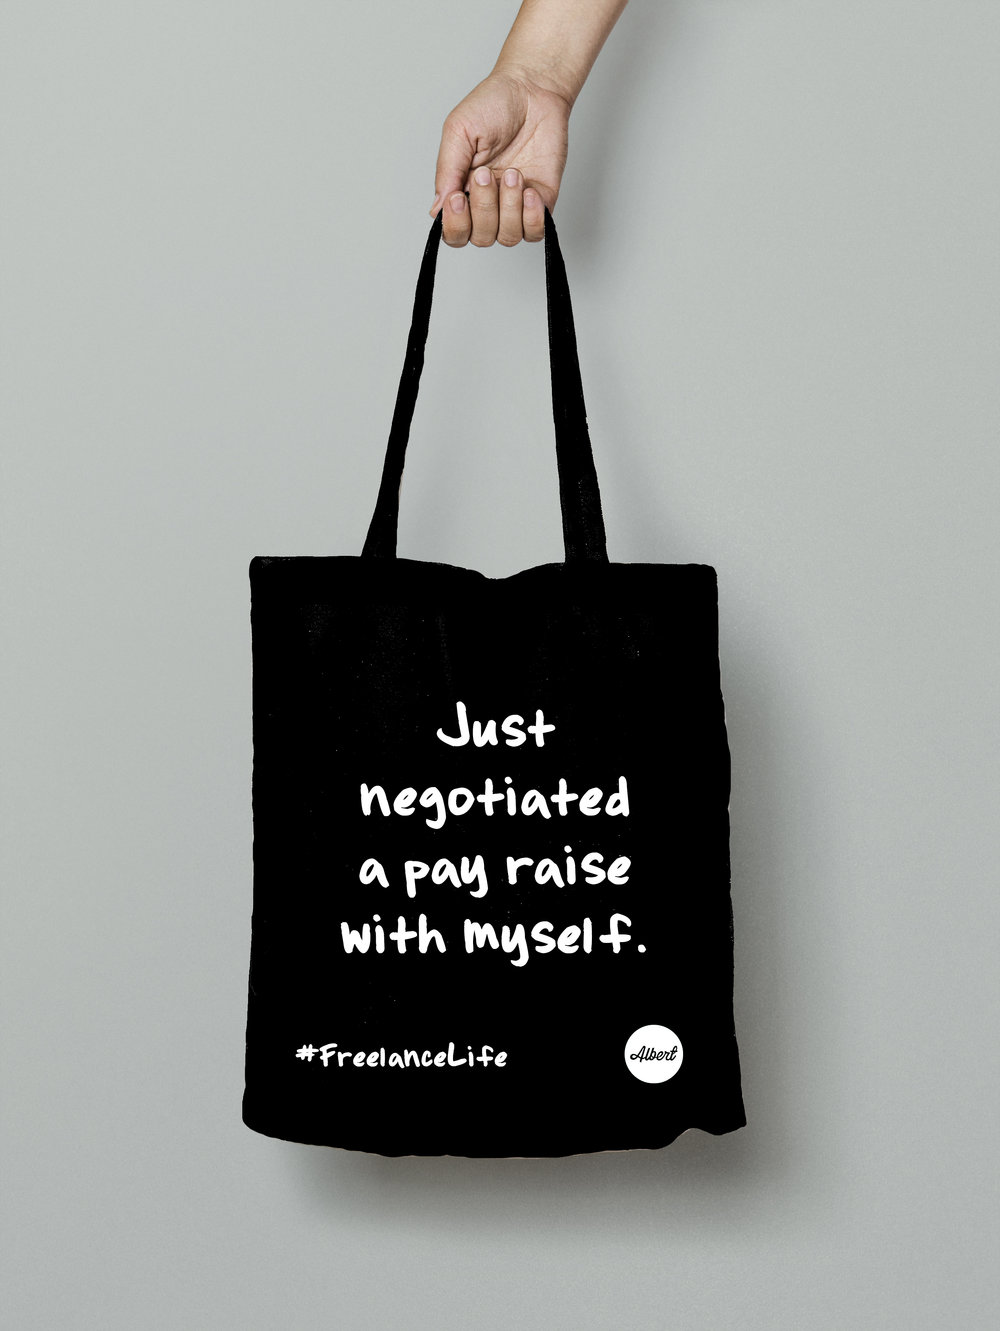 £8.50 - 'Just Negotiated...' - Black (White)